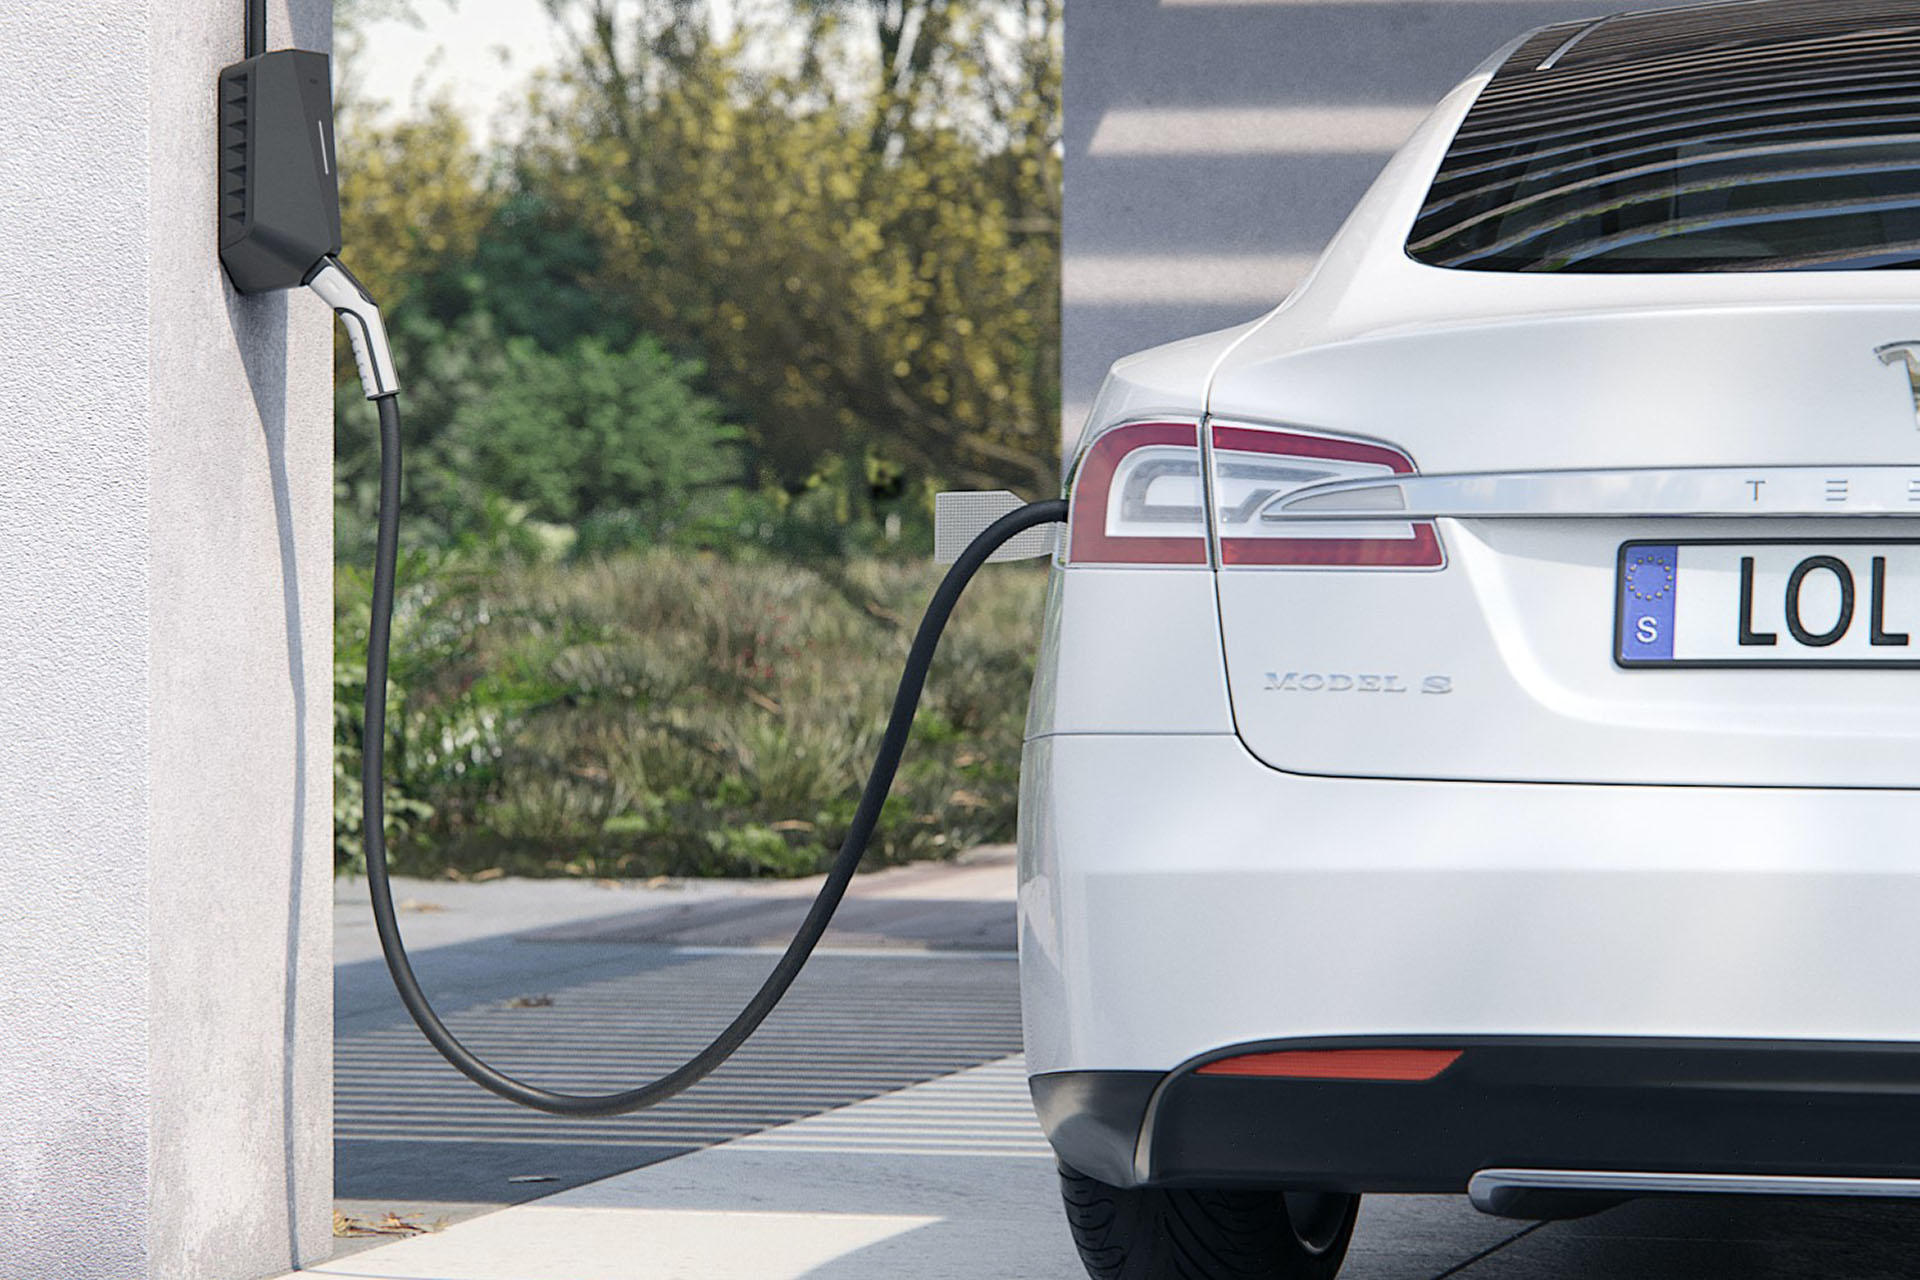 Flexible charging contributes to grid stability